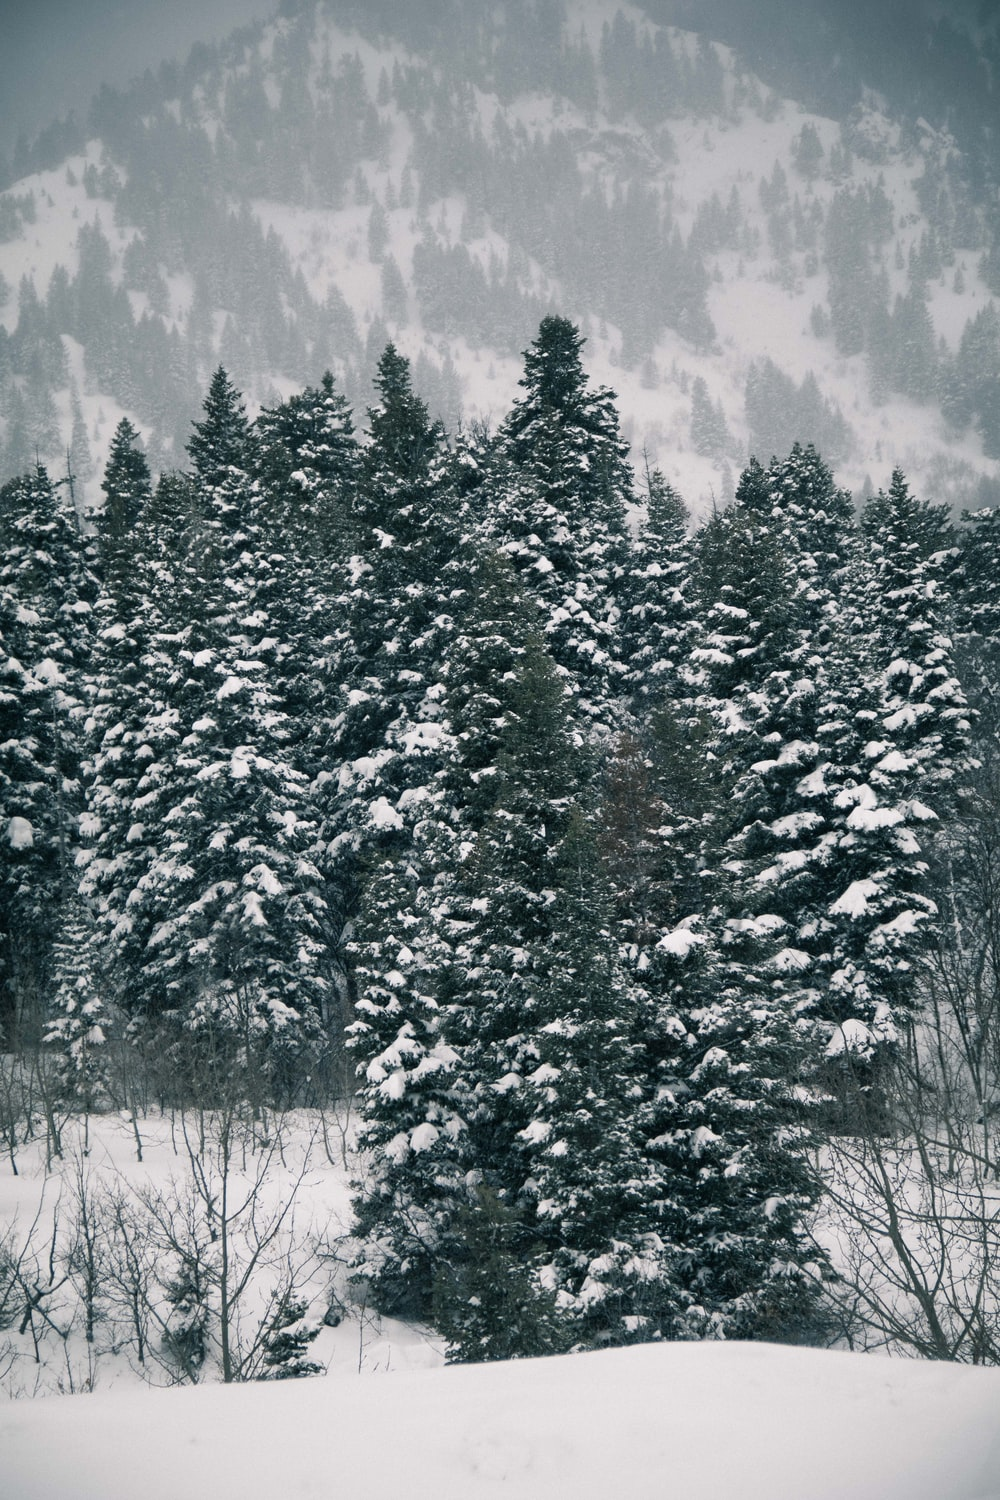 green leafed trees coated with snow during daytime